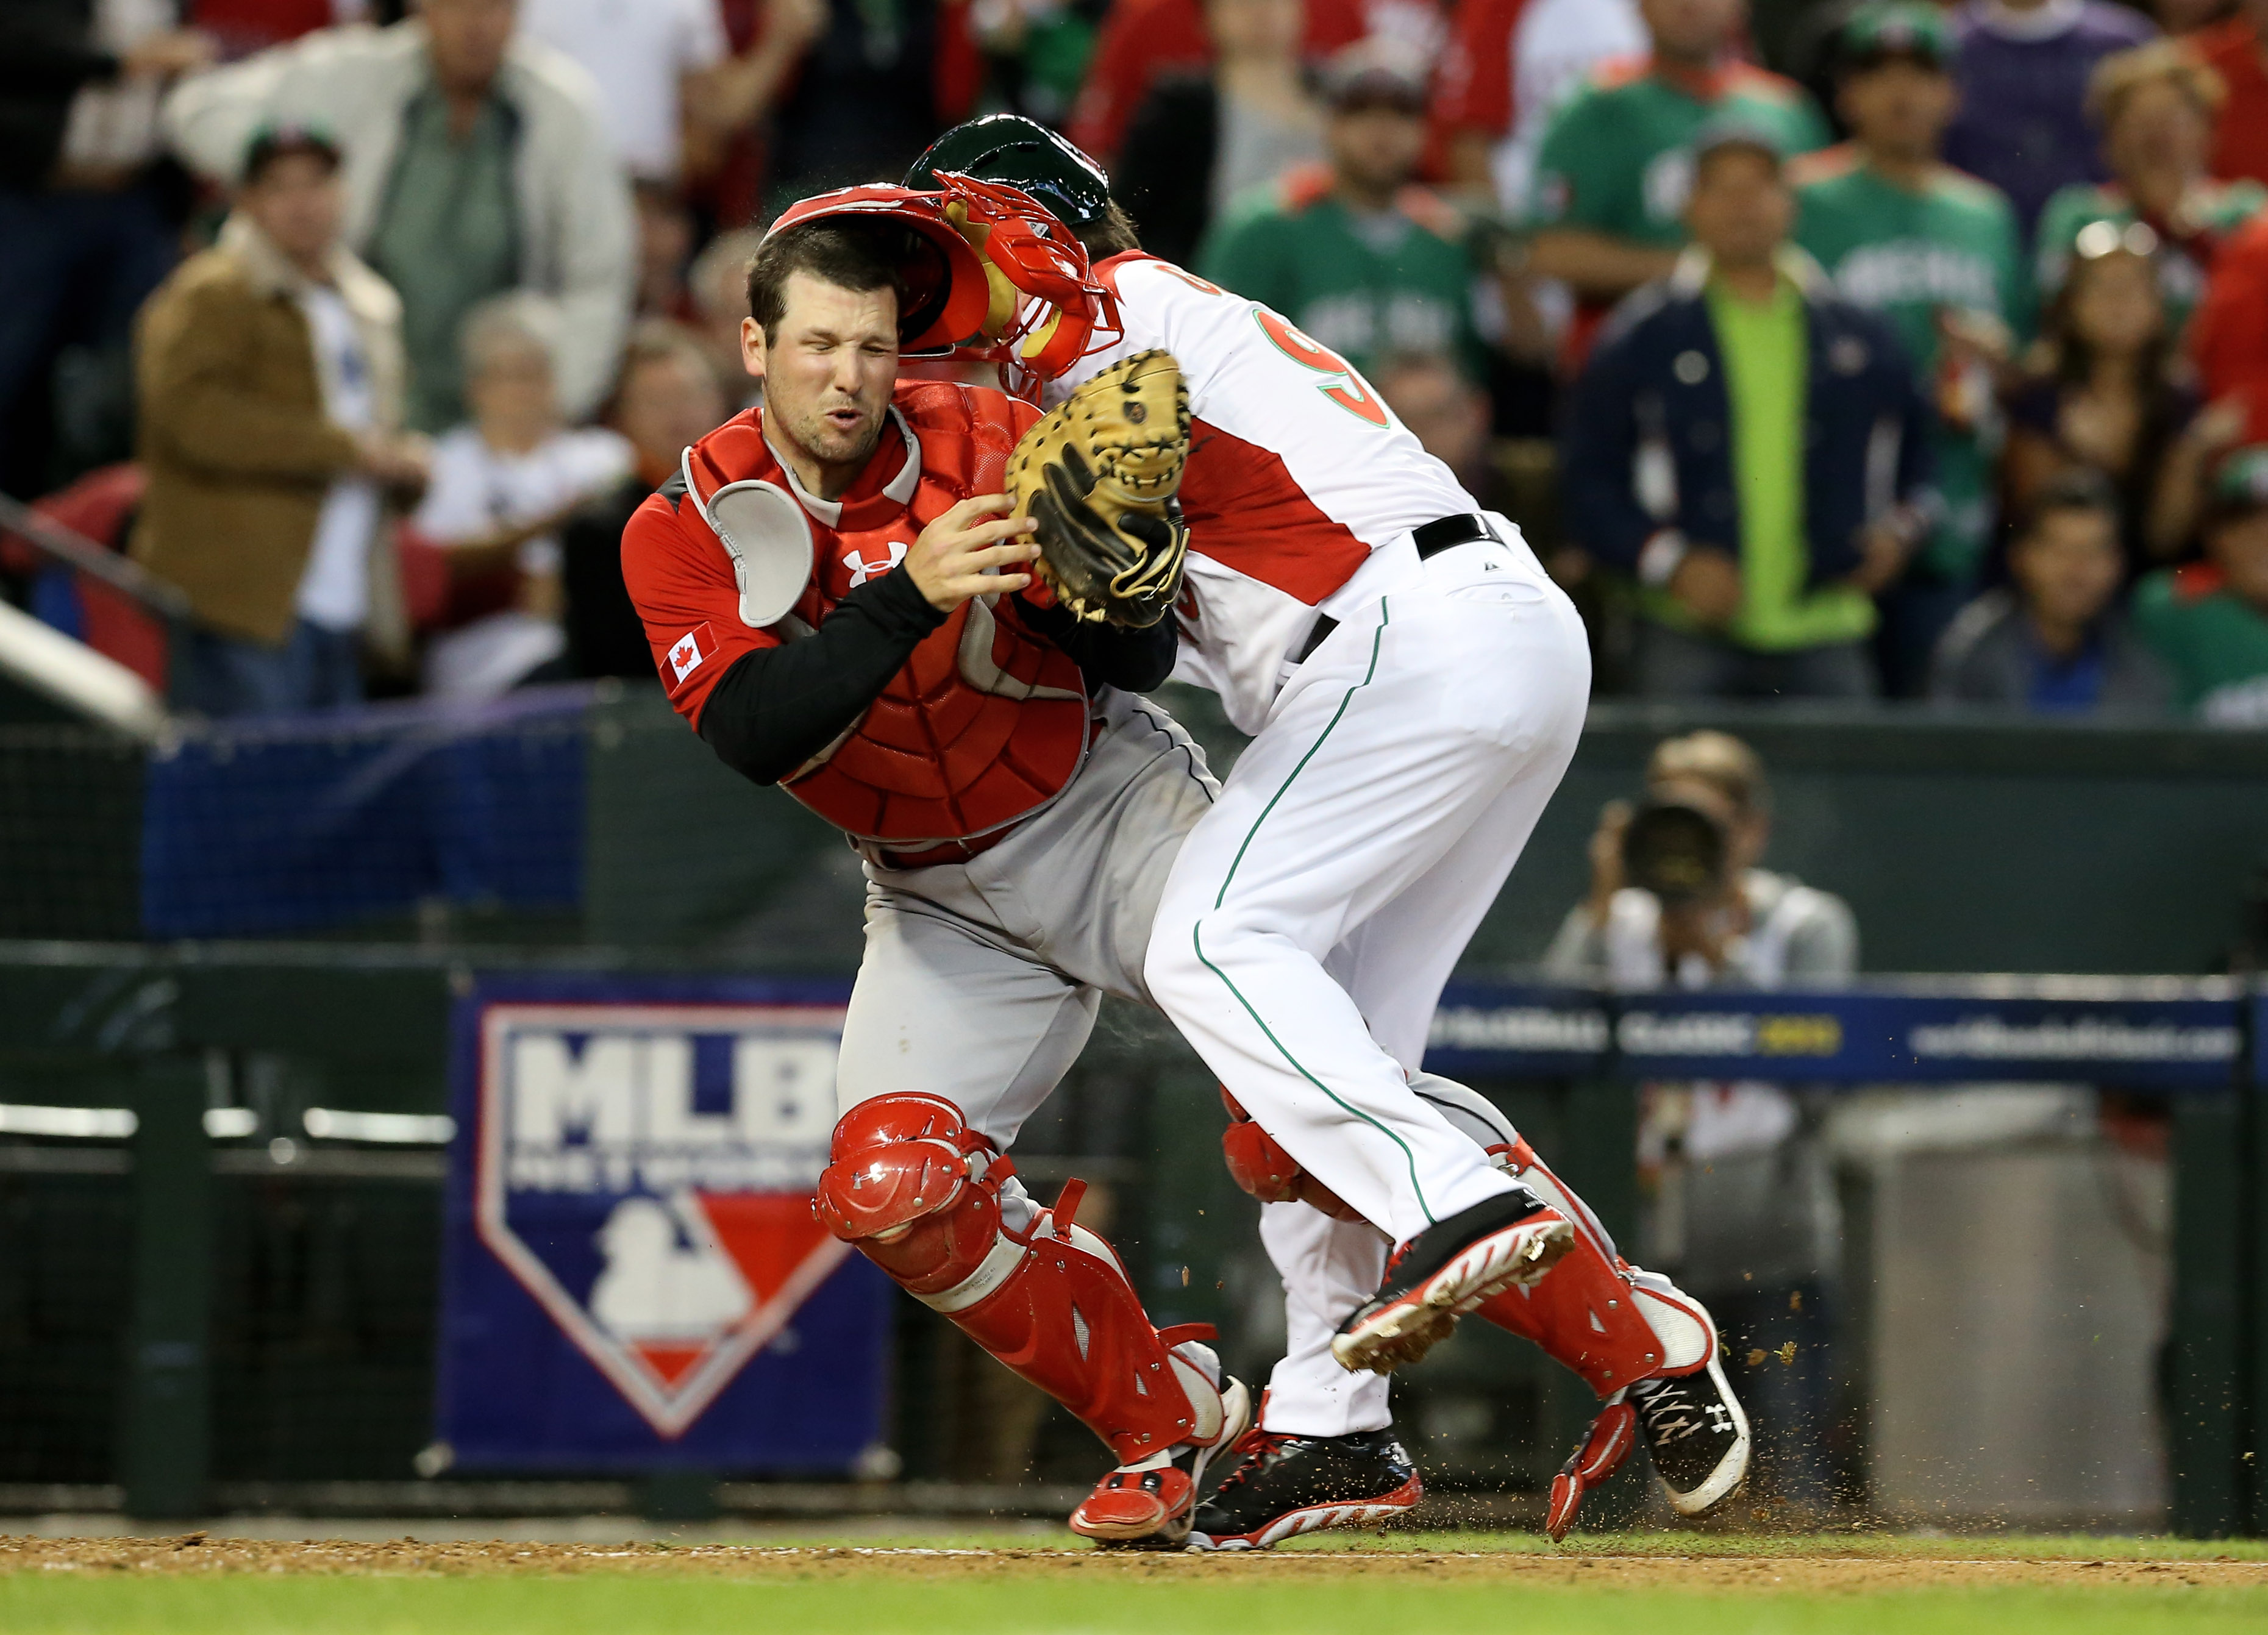 Mexico outfielder Karim Garcia collides with Canada catcher Chris Robinson in the fourth inning. (USA Today Sports)